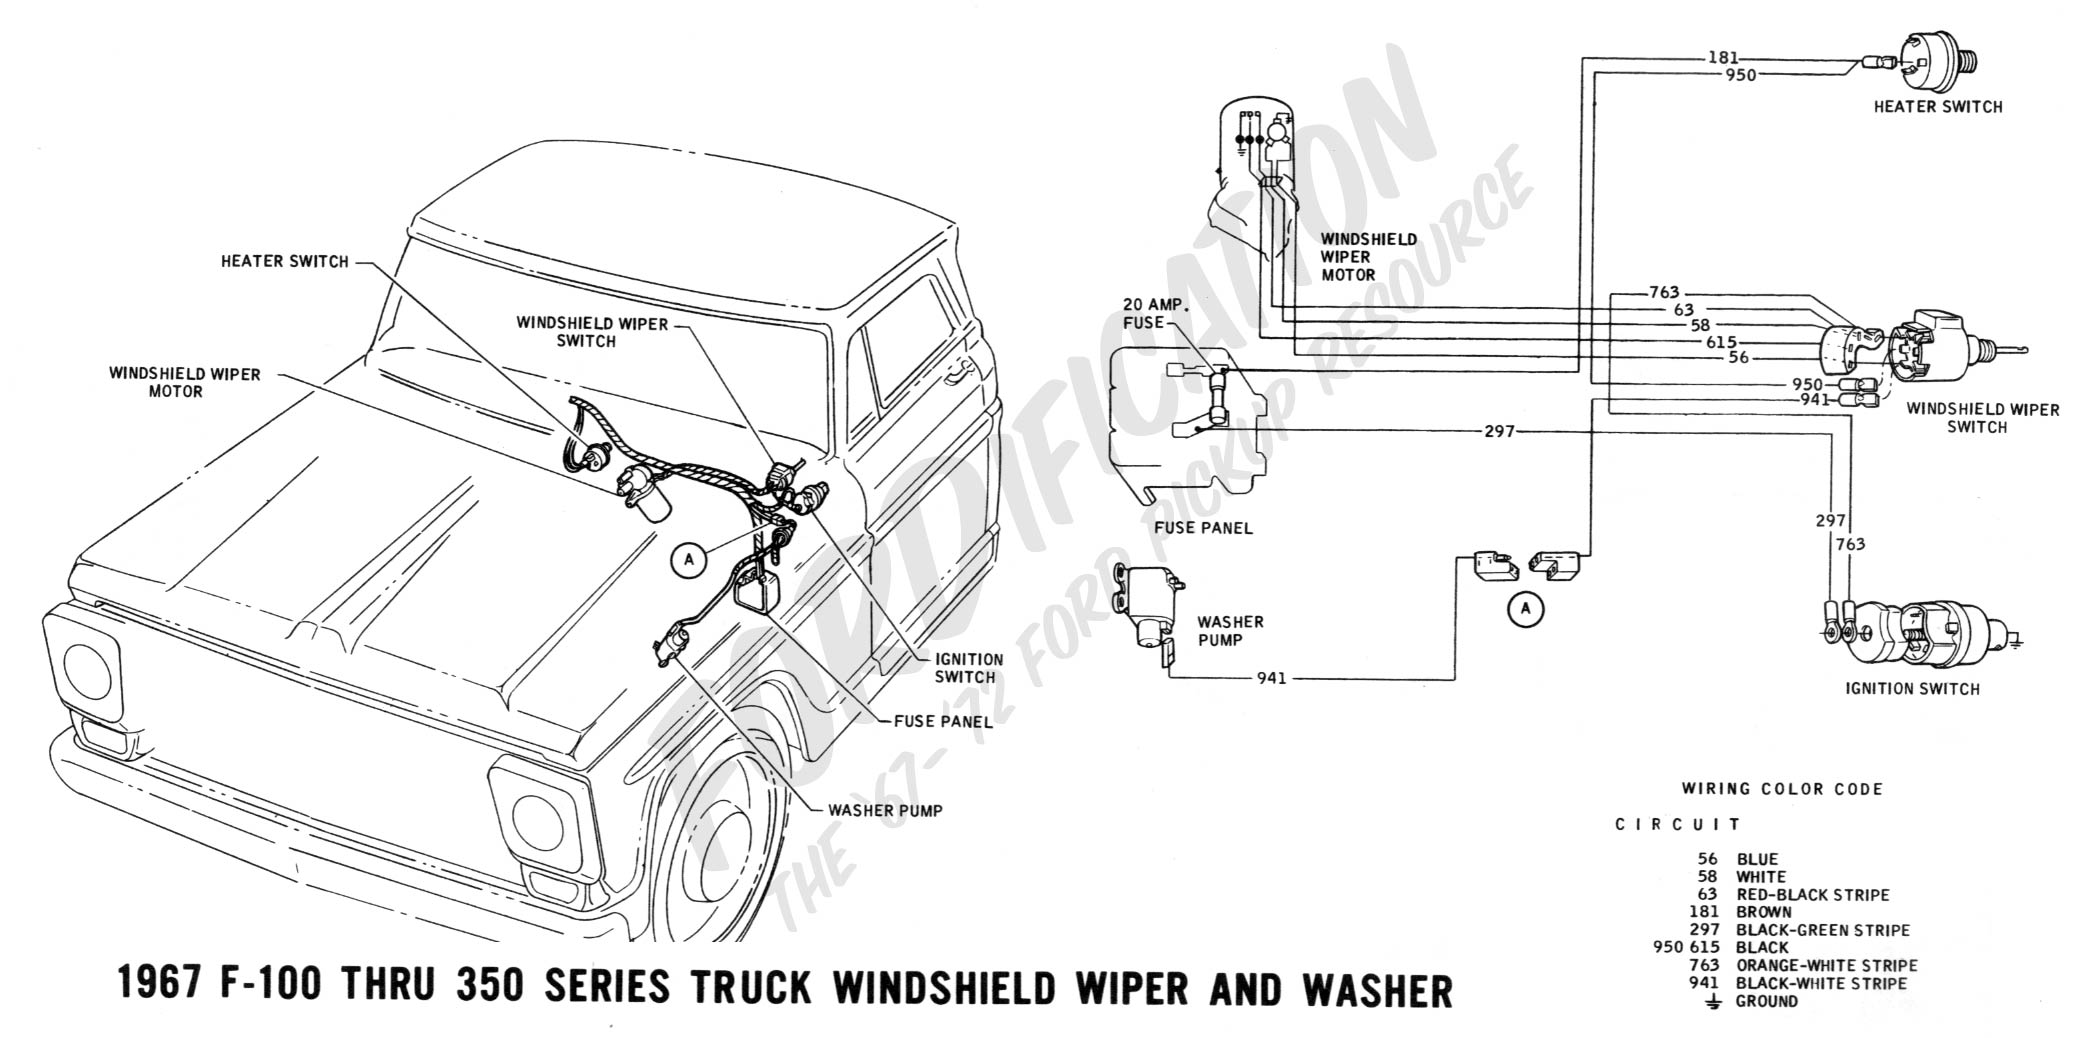 ford truck technical drawings and schematics section h wiring rh fordification com 1965 Ford Alternator Wiring Diagram 1990 Ford Alternator Wiring Diagram